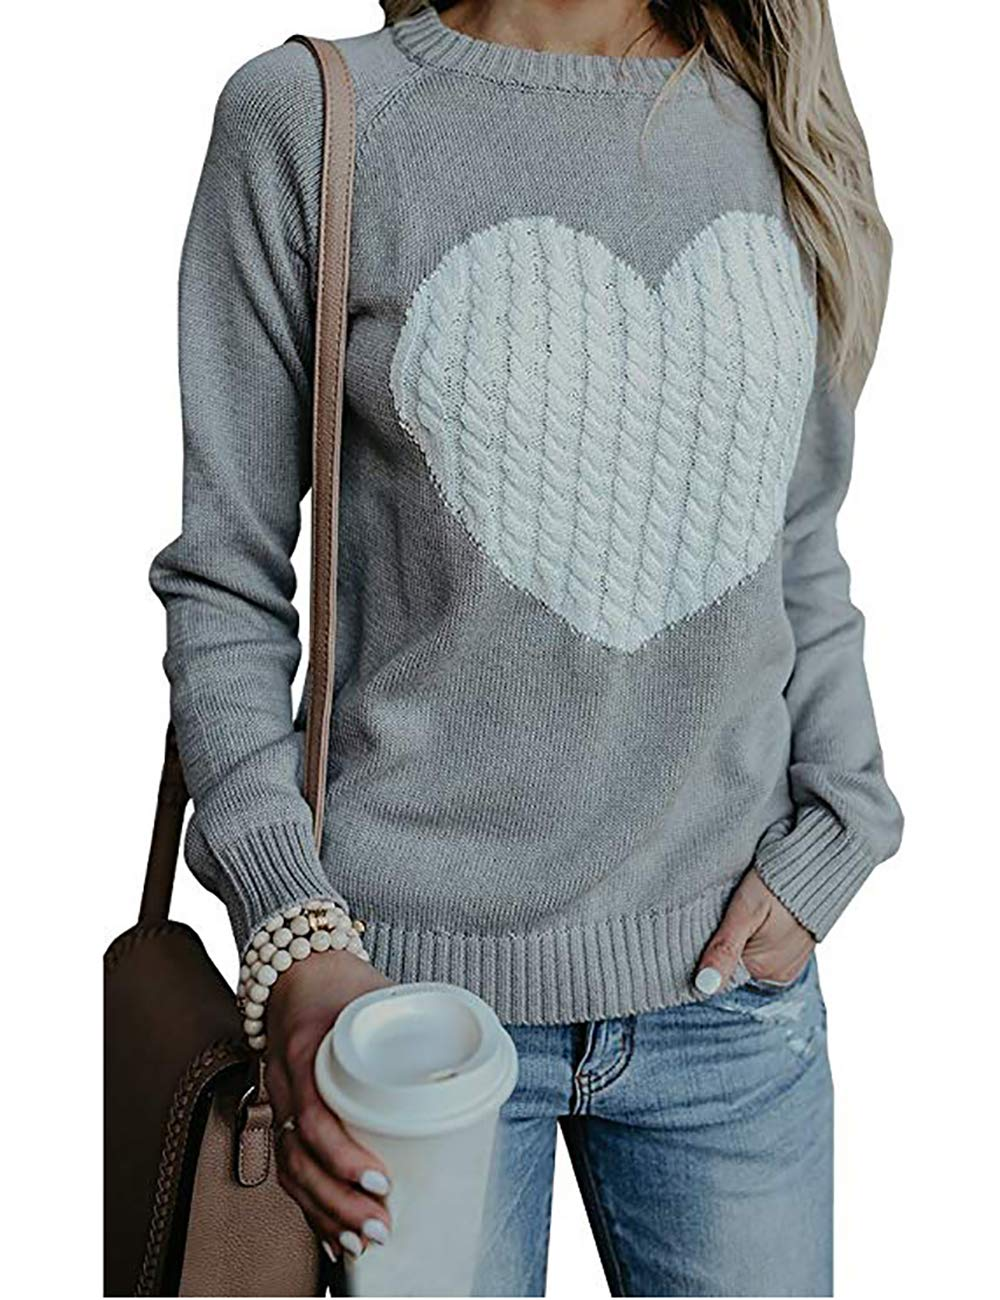 shermie Womens Pullover Sweaters Long Sleeve Crewneck Cute Heart Knitted Sweaters Grey, Medium by shermie